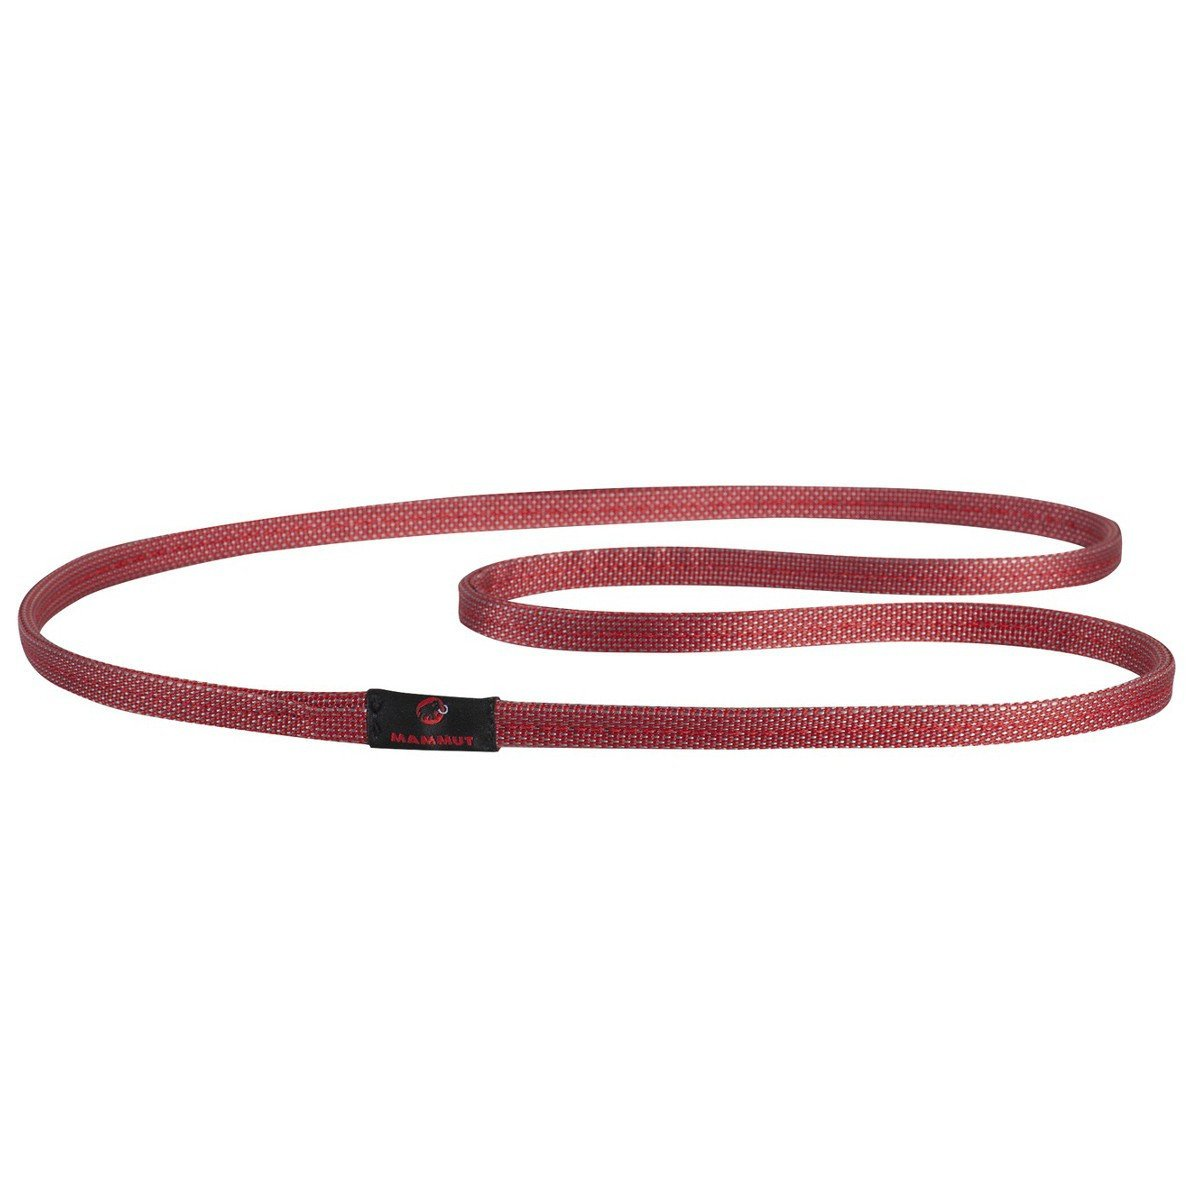 Mammut Magic climbing sling 12mm x 60cm, shown in red colour